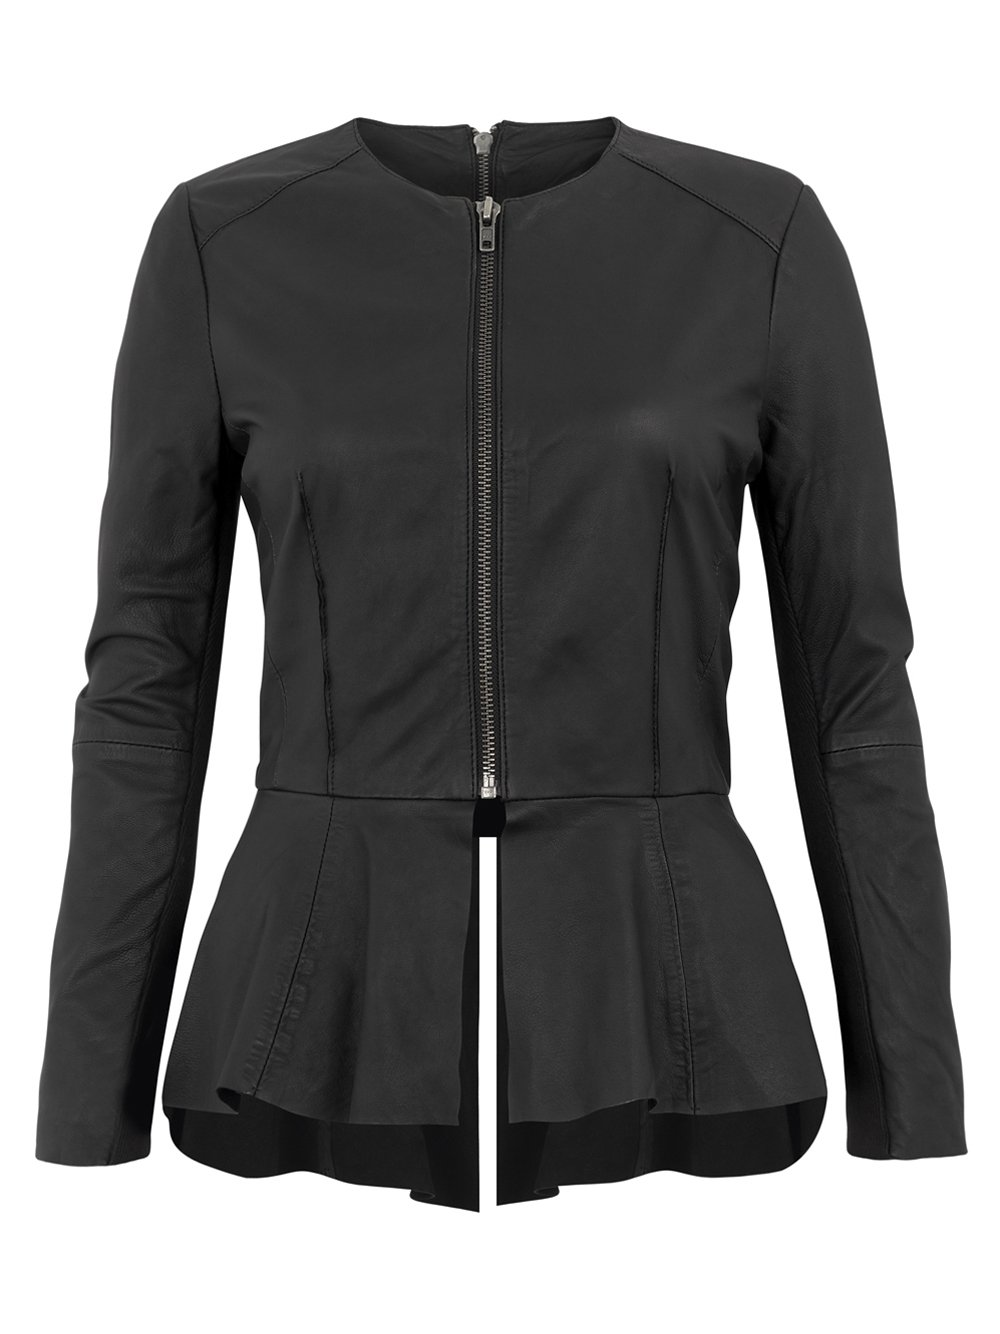 Find great deals on eBay for black peplum jacket. Shop with confidence.